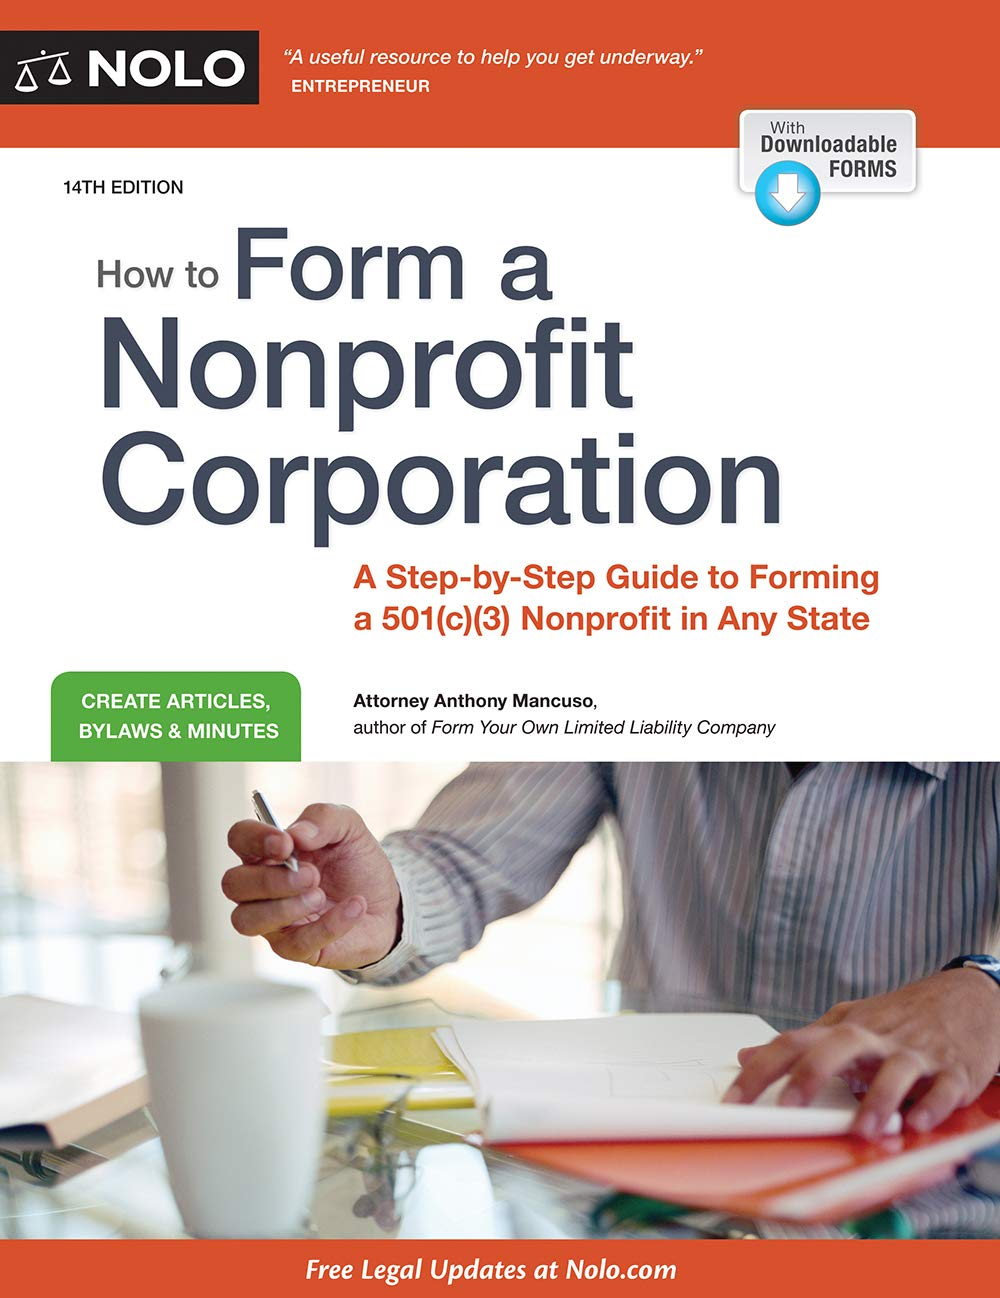 How to Form a Nonprofit Corporation (National Ed): A Step-by-Step Guide to Forming a 501(c)(3) Nonprofit in Any State